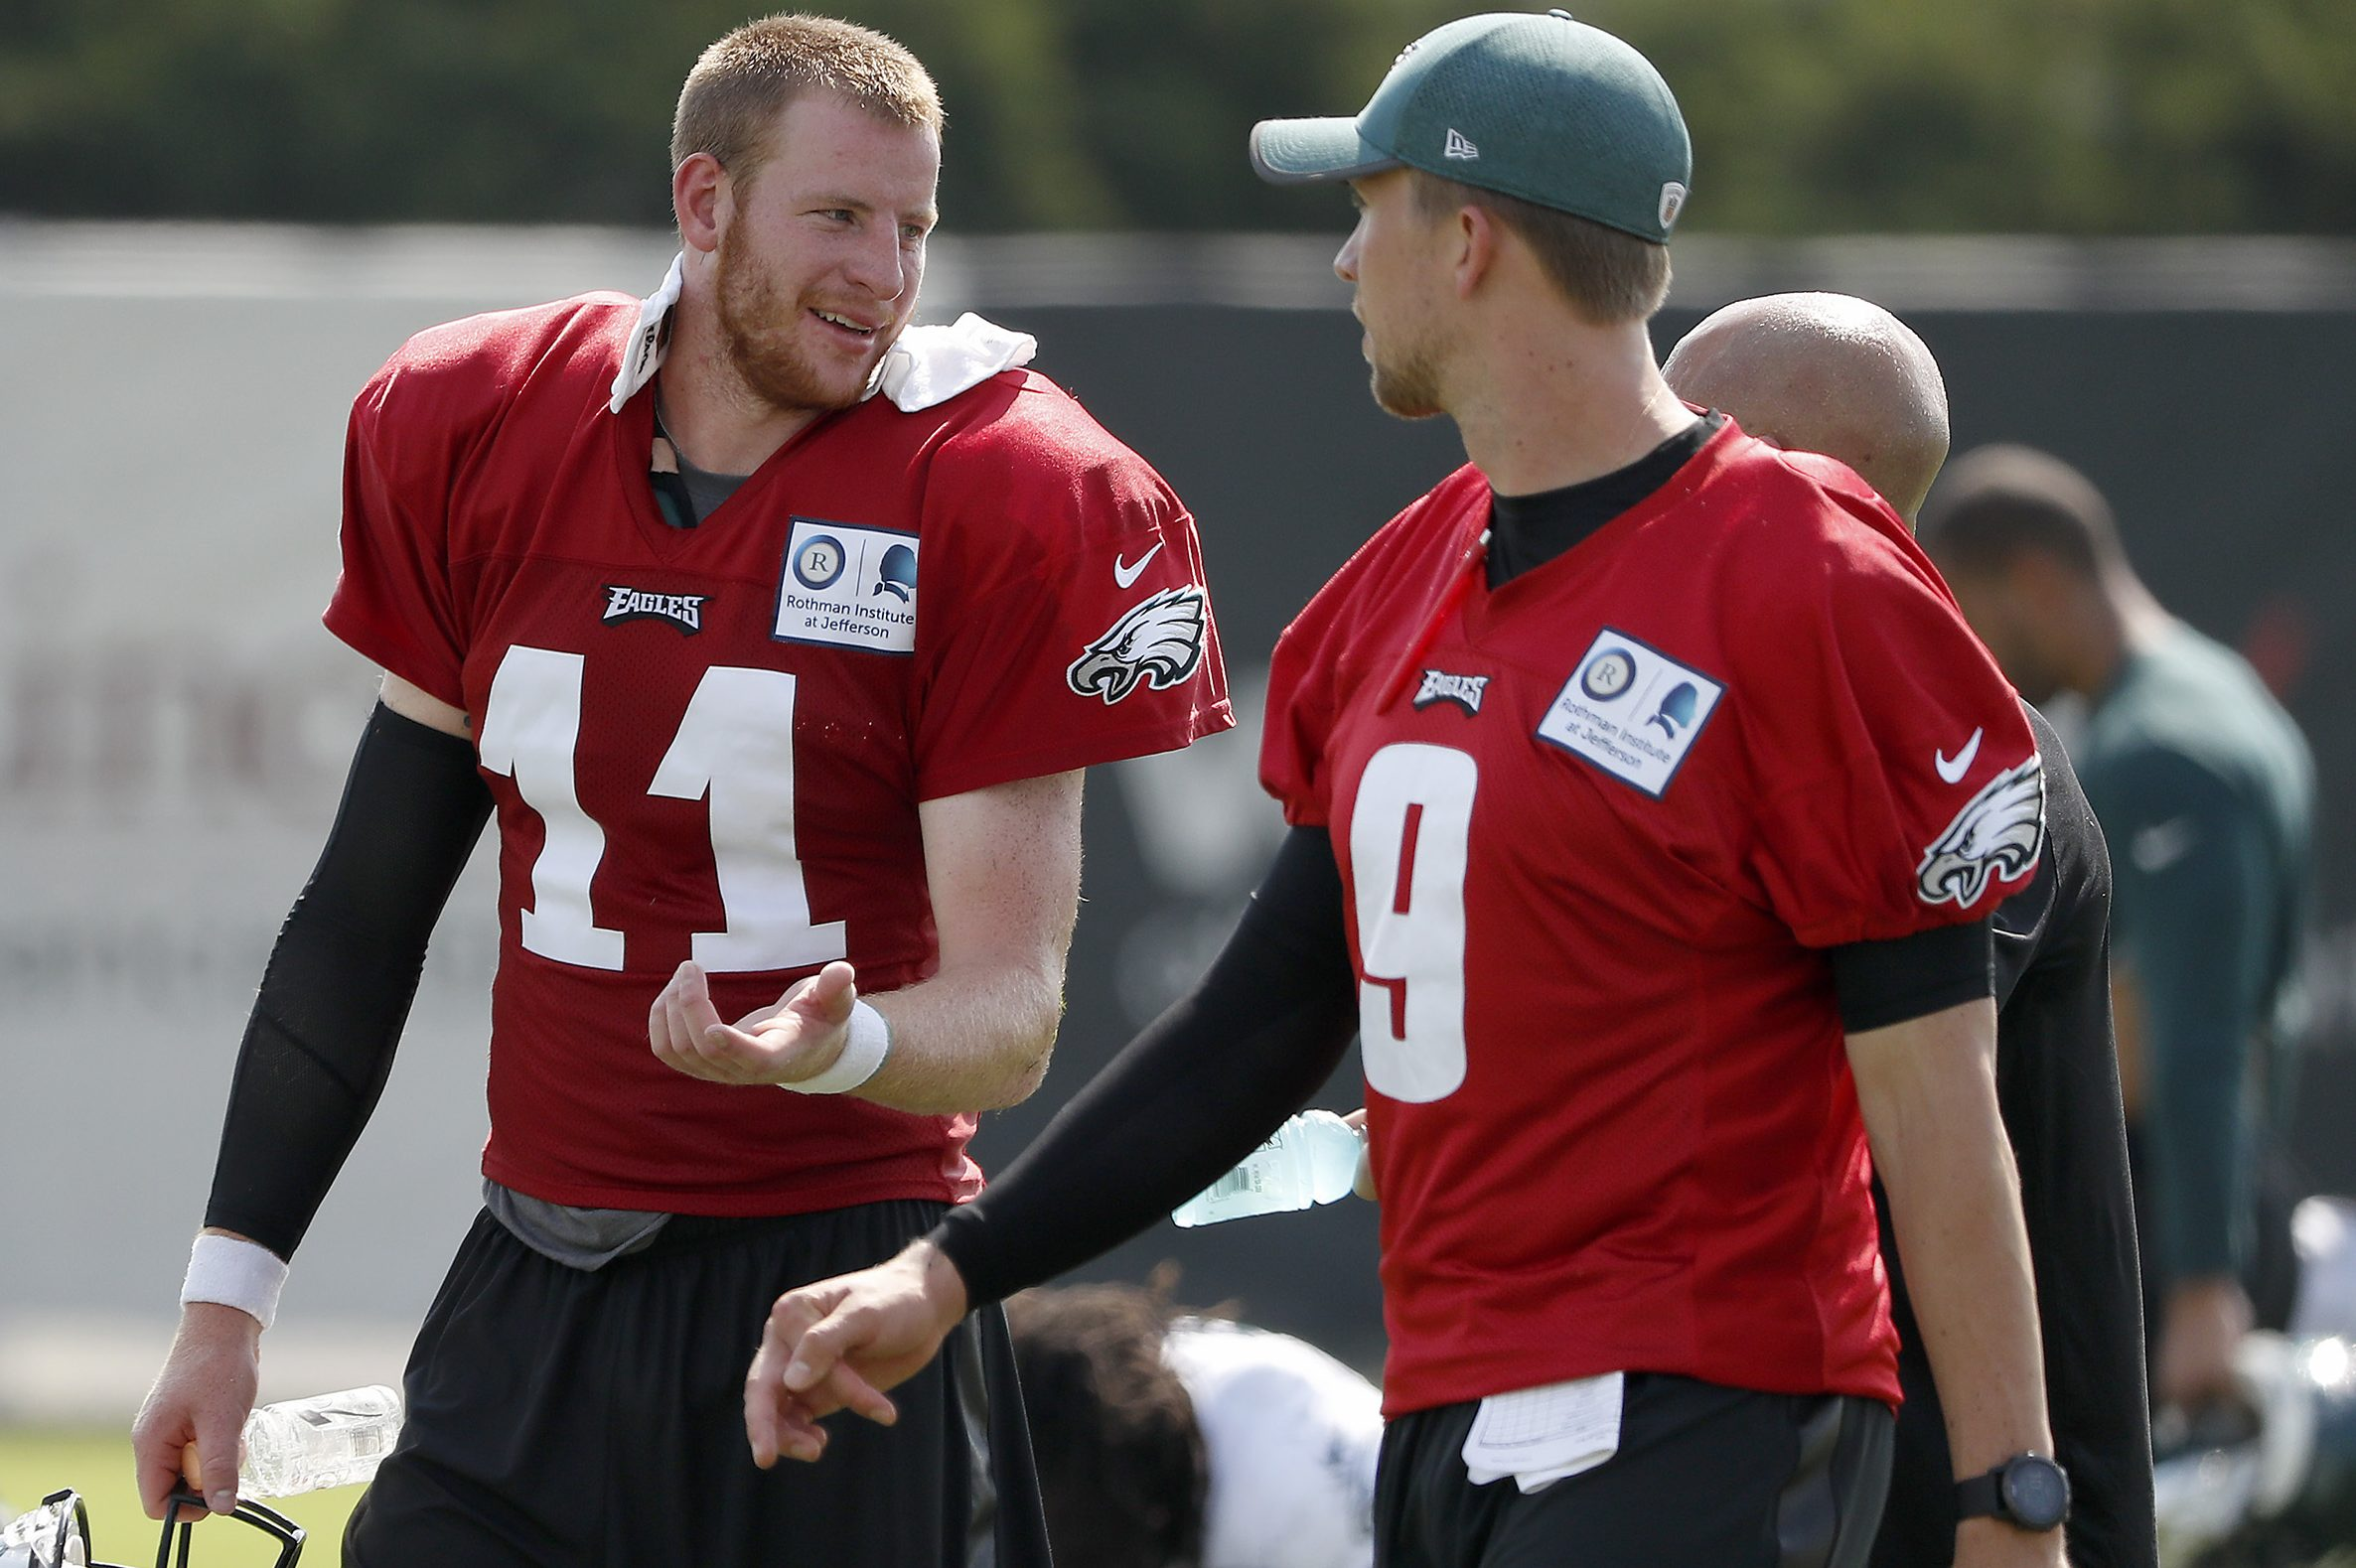 Carson Wentz and Nick Foles,. pictured during training camp. have different cadences, different ways of calling plays